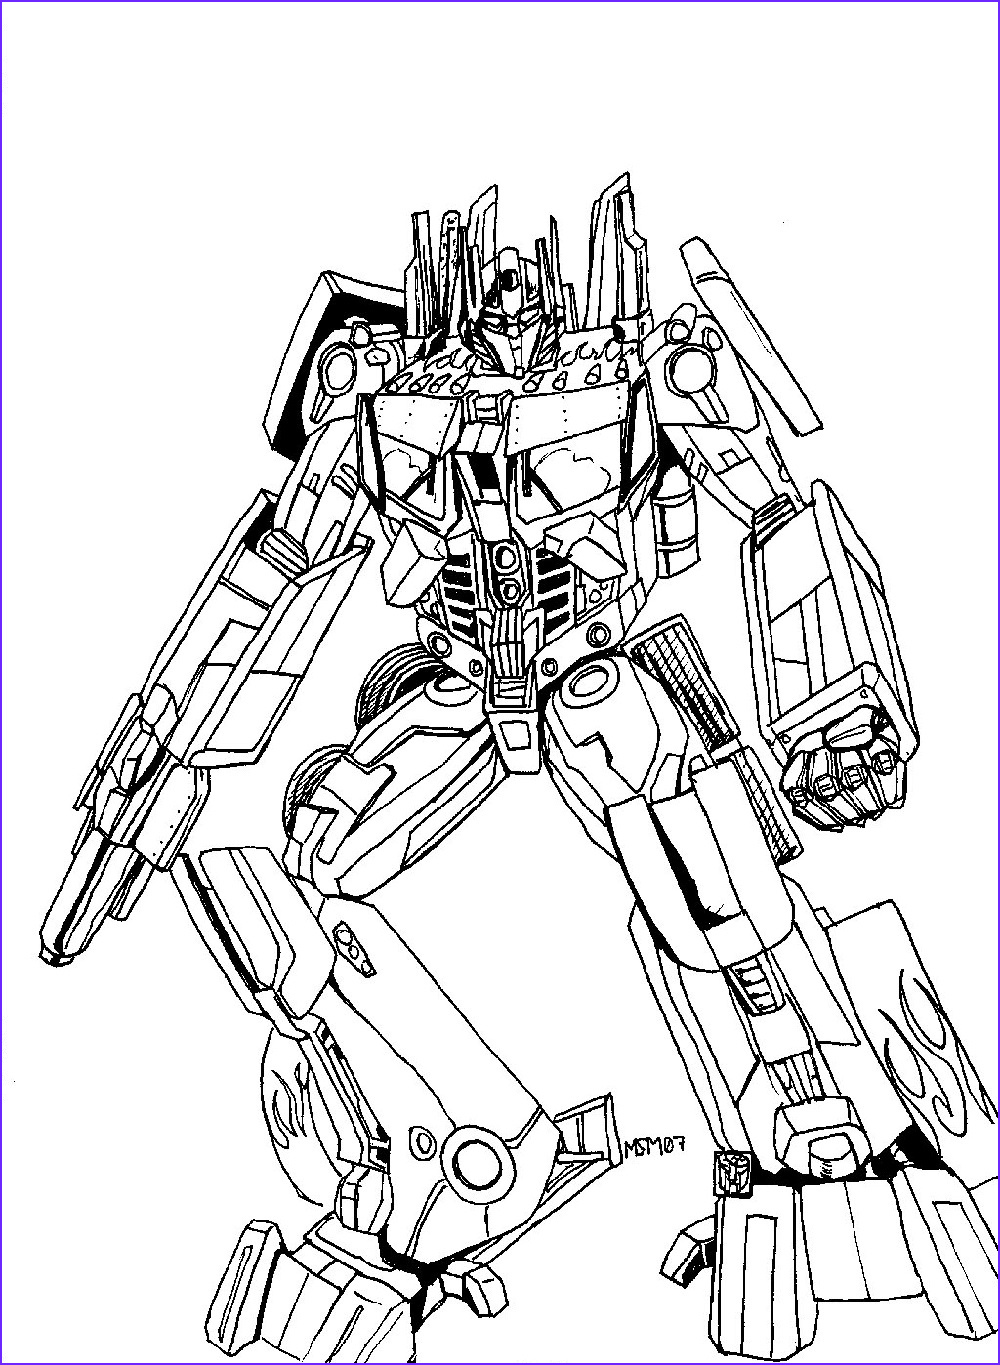 Bumblebee Transformer Coloring Page Best Of Gallery Bumblebee Transformer Coloring Page